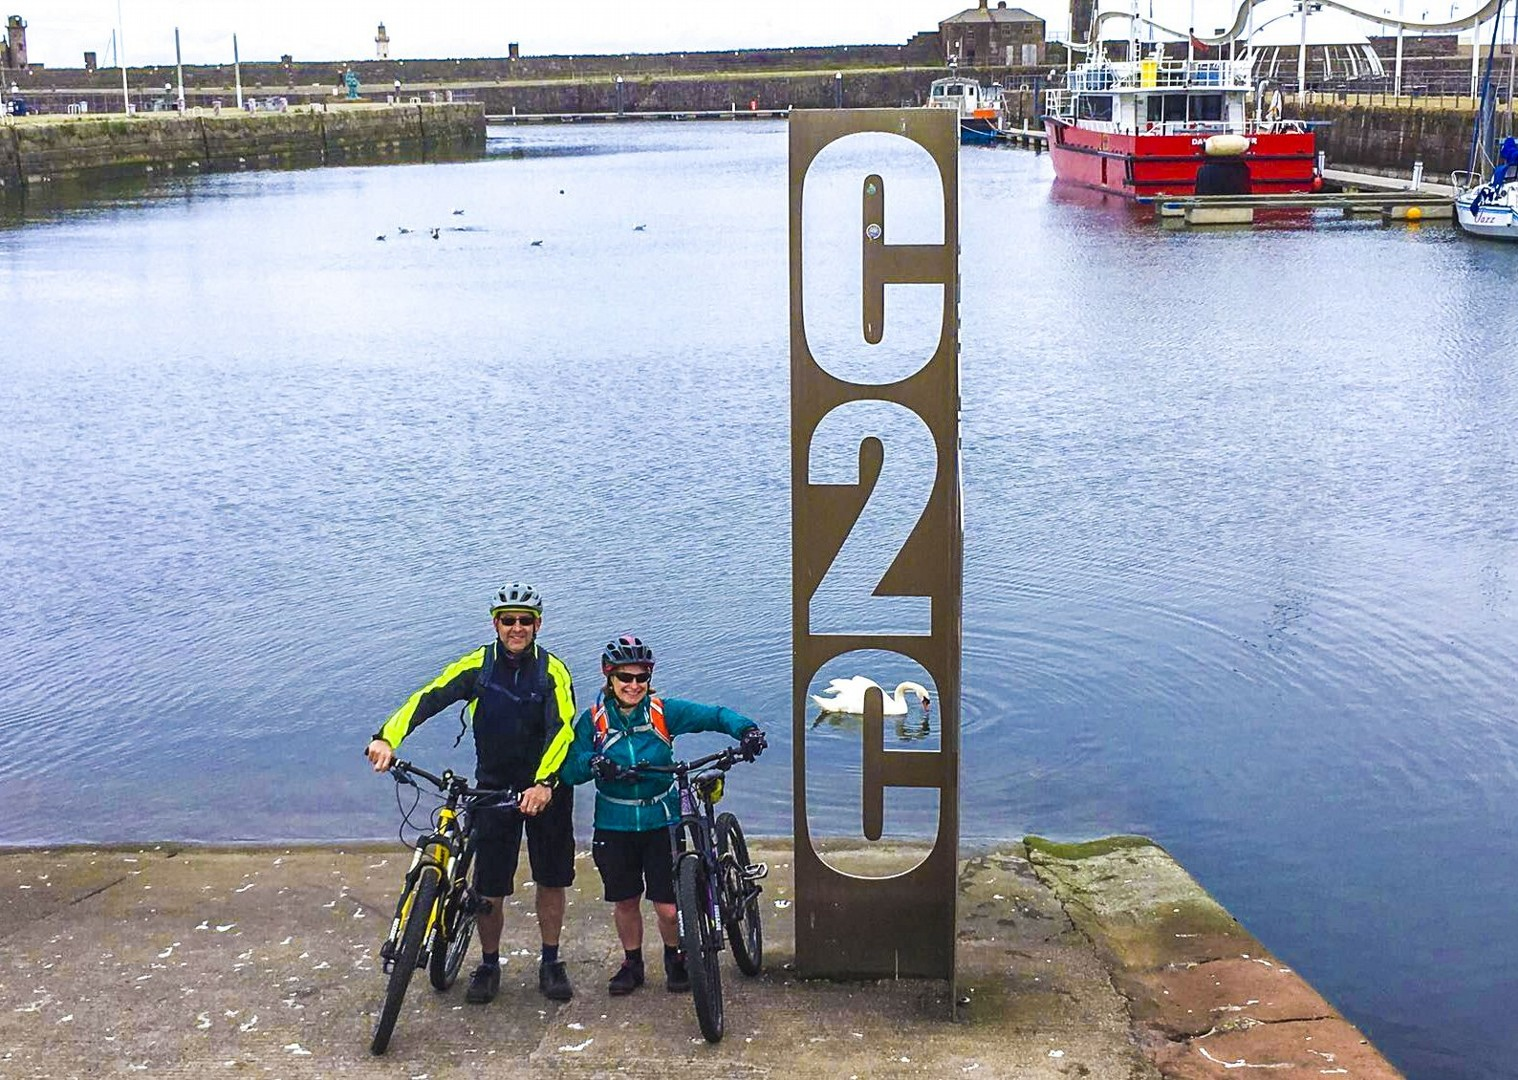 coast-to-coast-uk-whitehaven-to-newcastle-experience.jpg - UK - C2C - Coast to Coast 3 Days Cycling - Self-Guided Leisure Cycling Holiday - Leisure Cycling